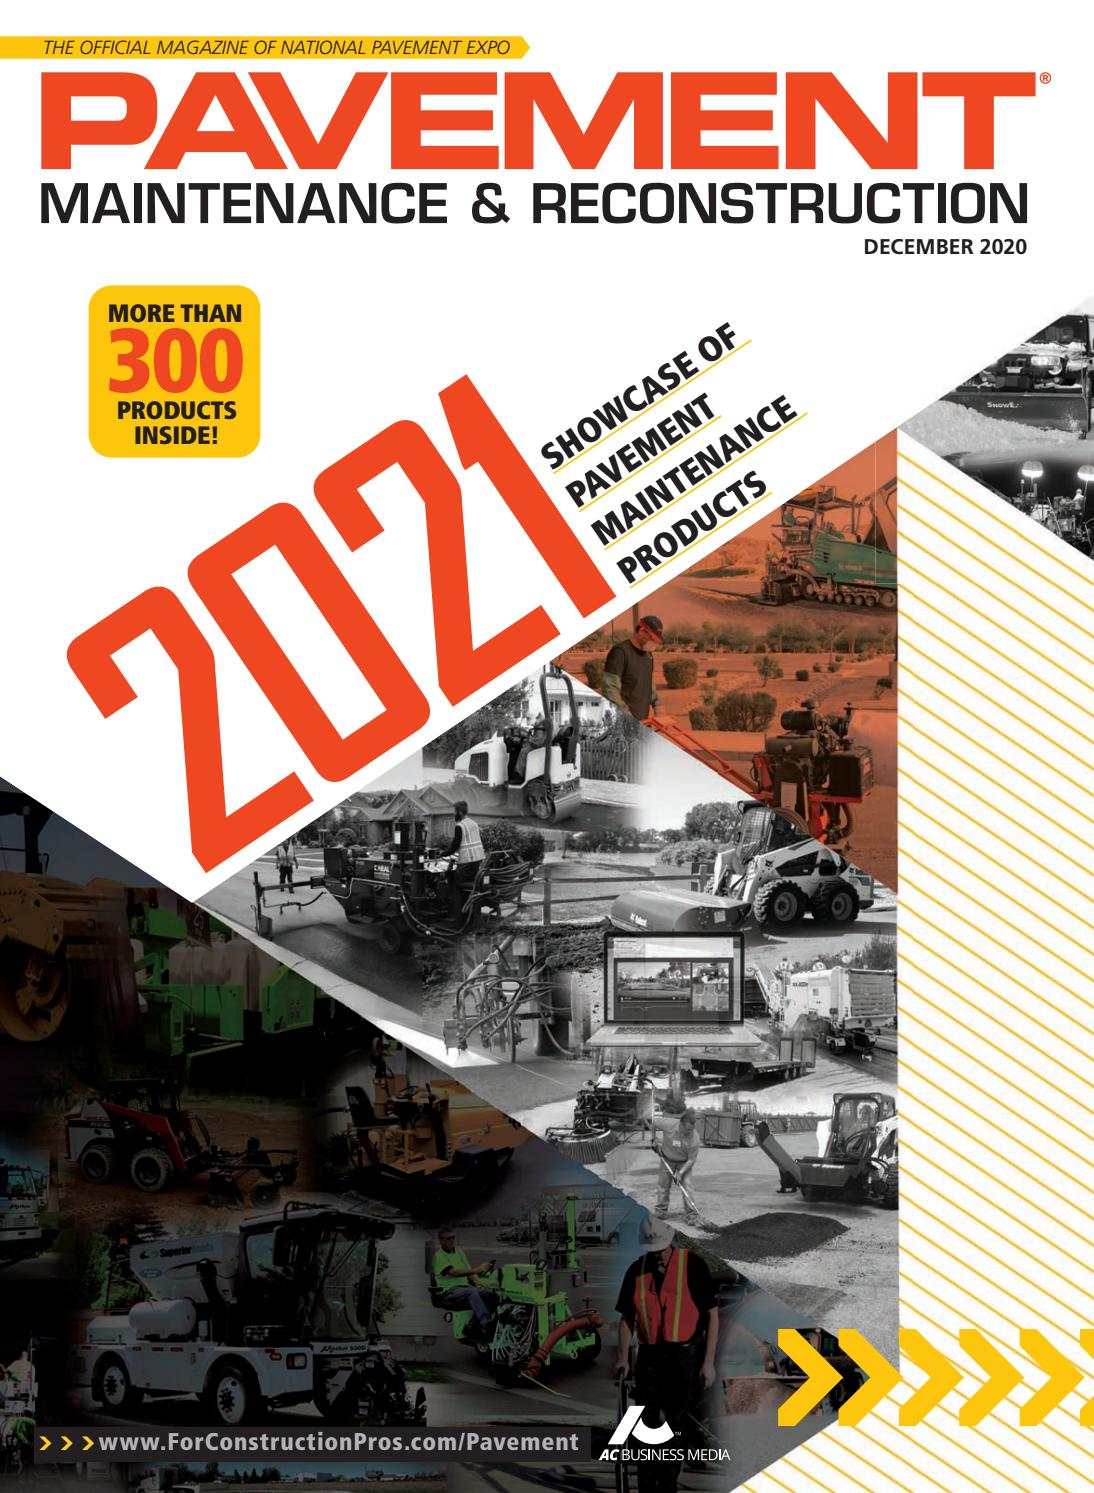 Pavement Maintenance Reconstruction December 2020 By Forconstructionpros Com Issuu